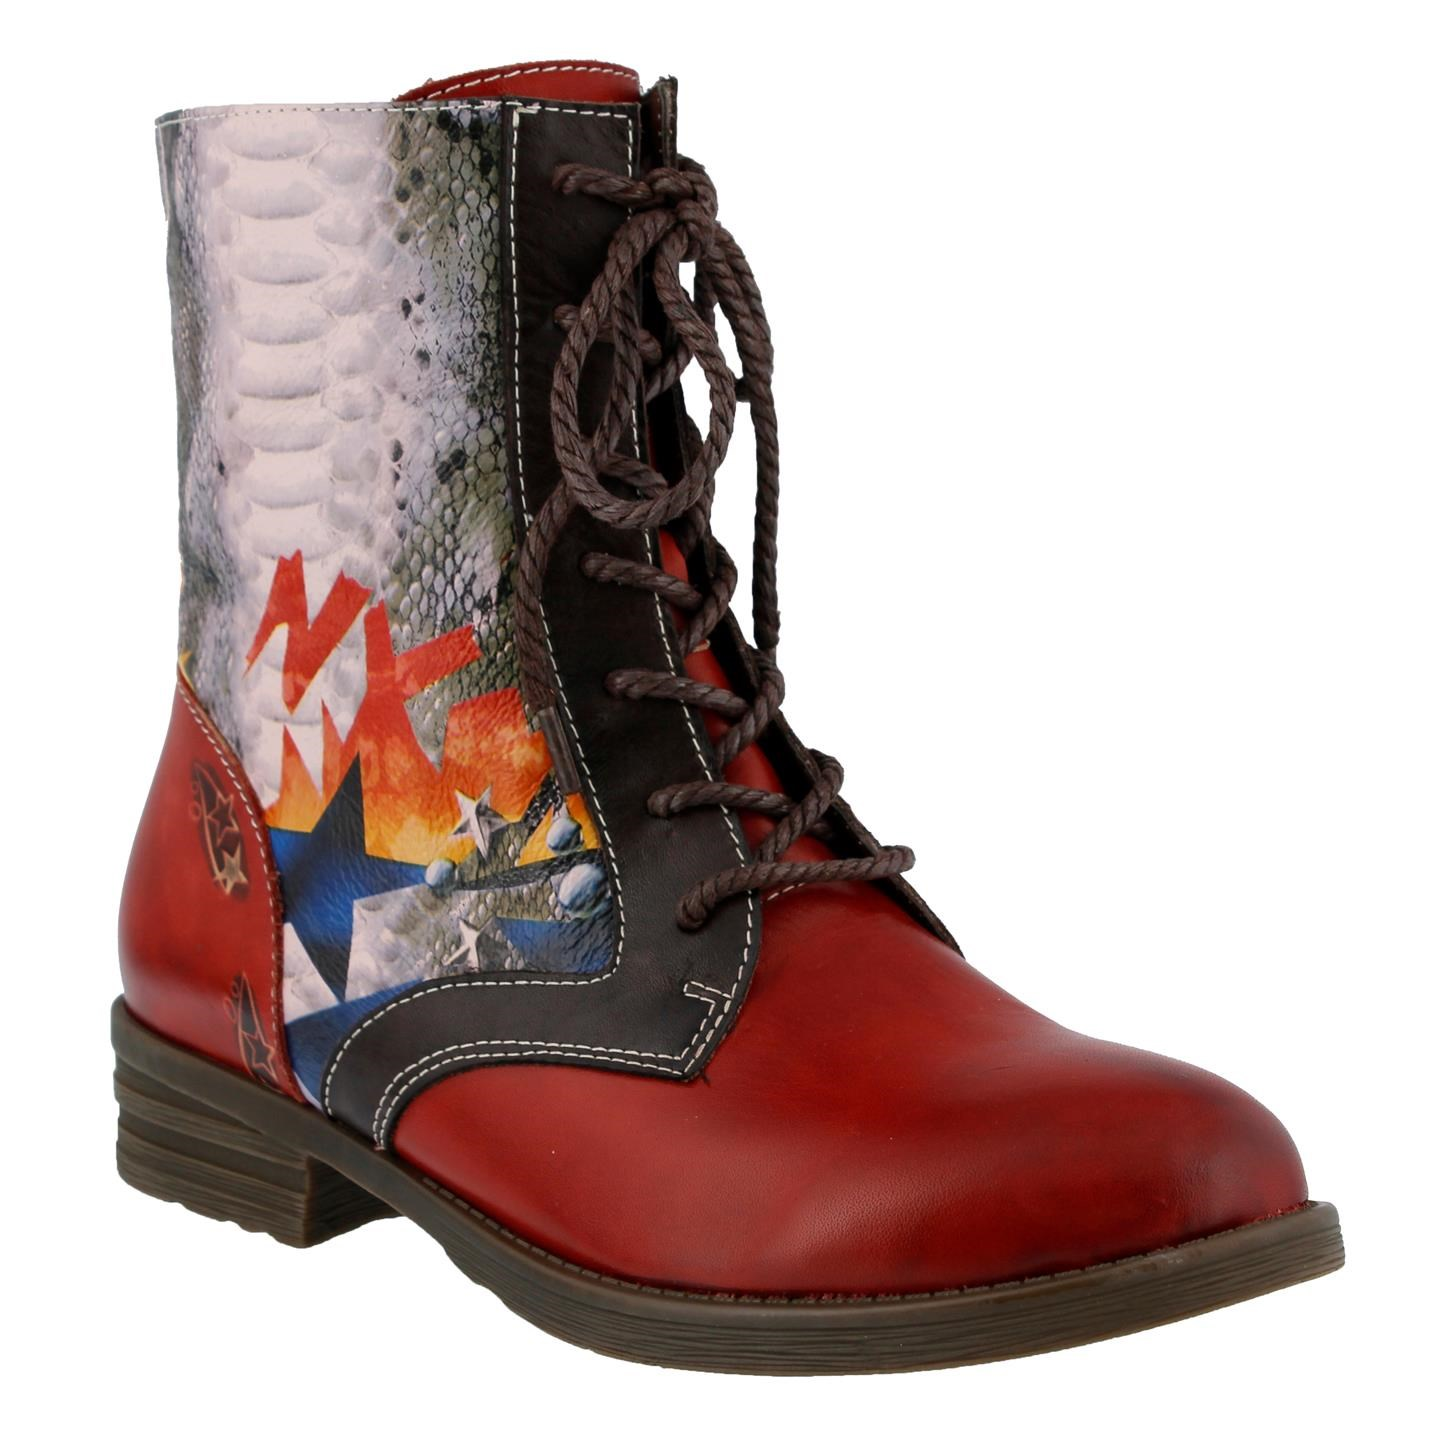 L'Artiste Comical By Spring Step Red Leather Boots 35 EU   5 US Women by Spring Step